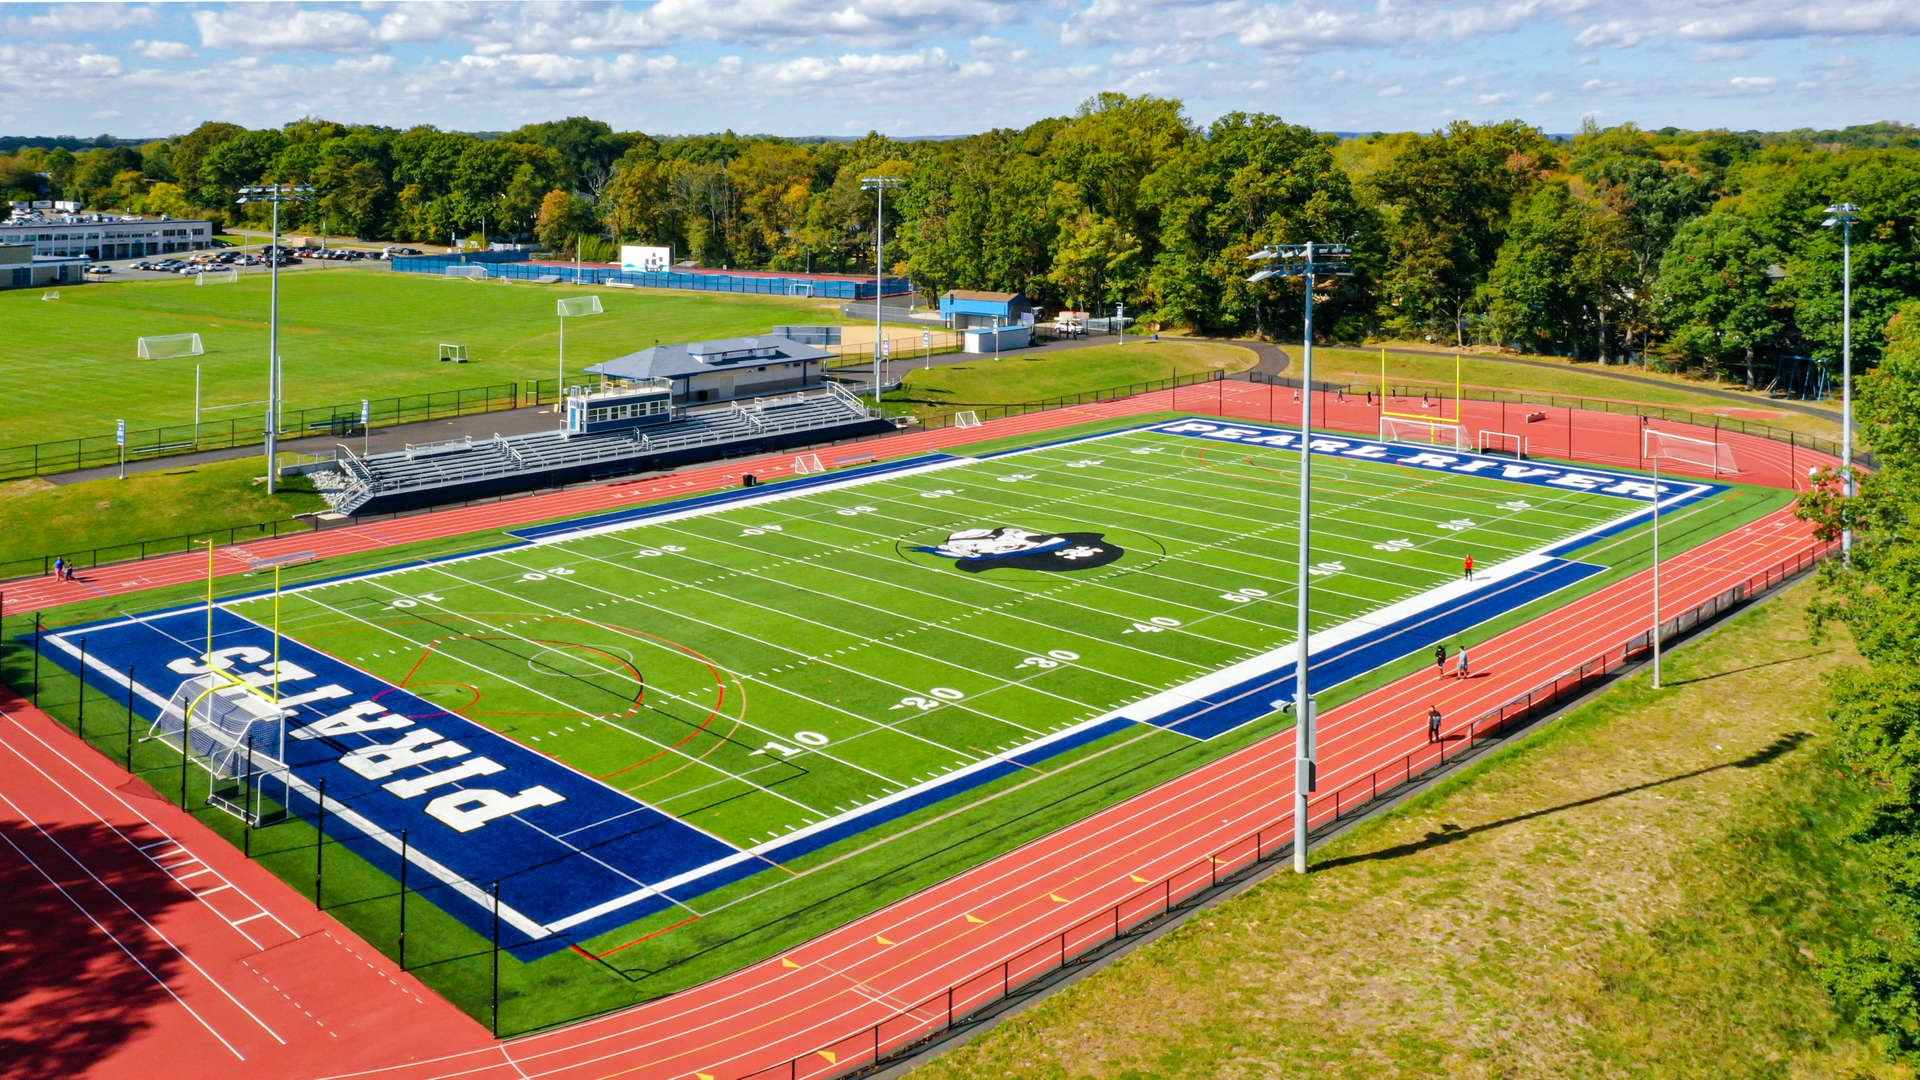 PRSD HS Athletic Fields and Campus - Drone Shot